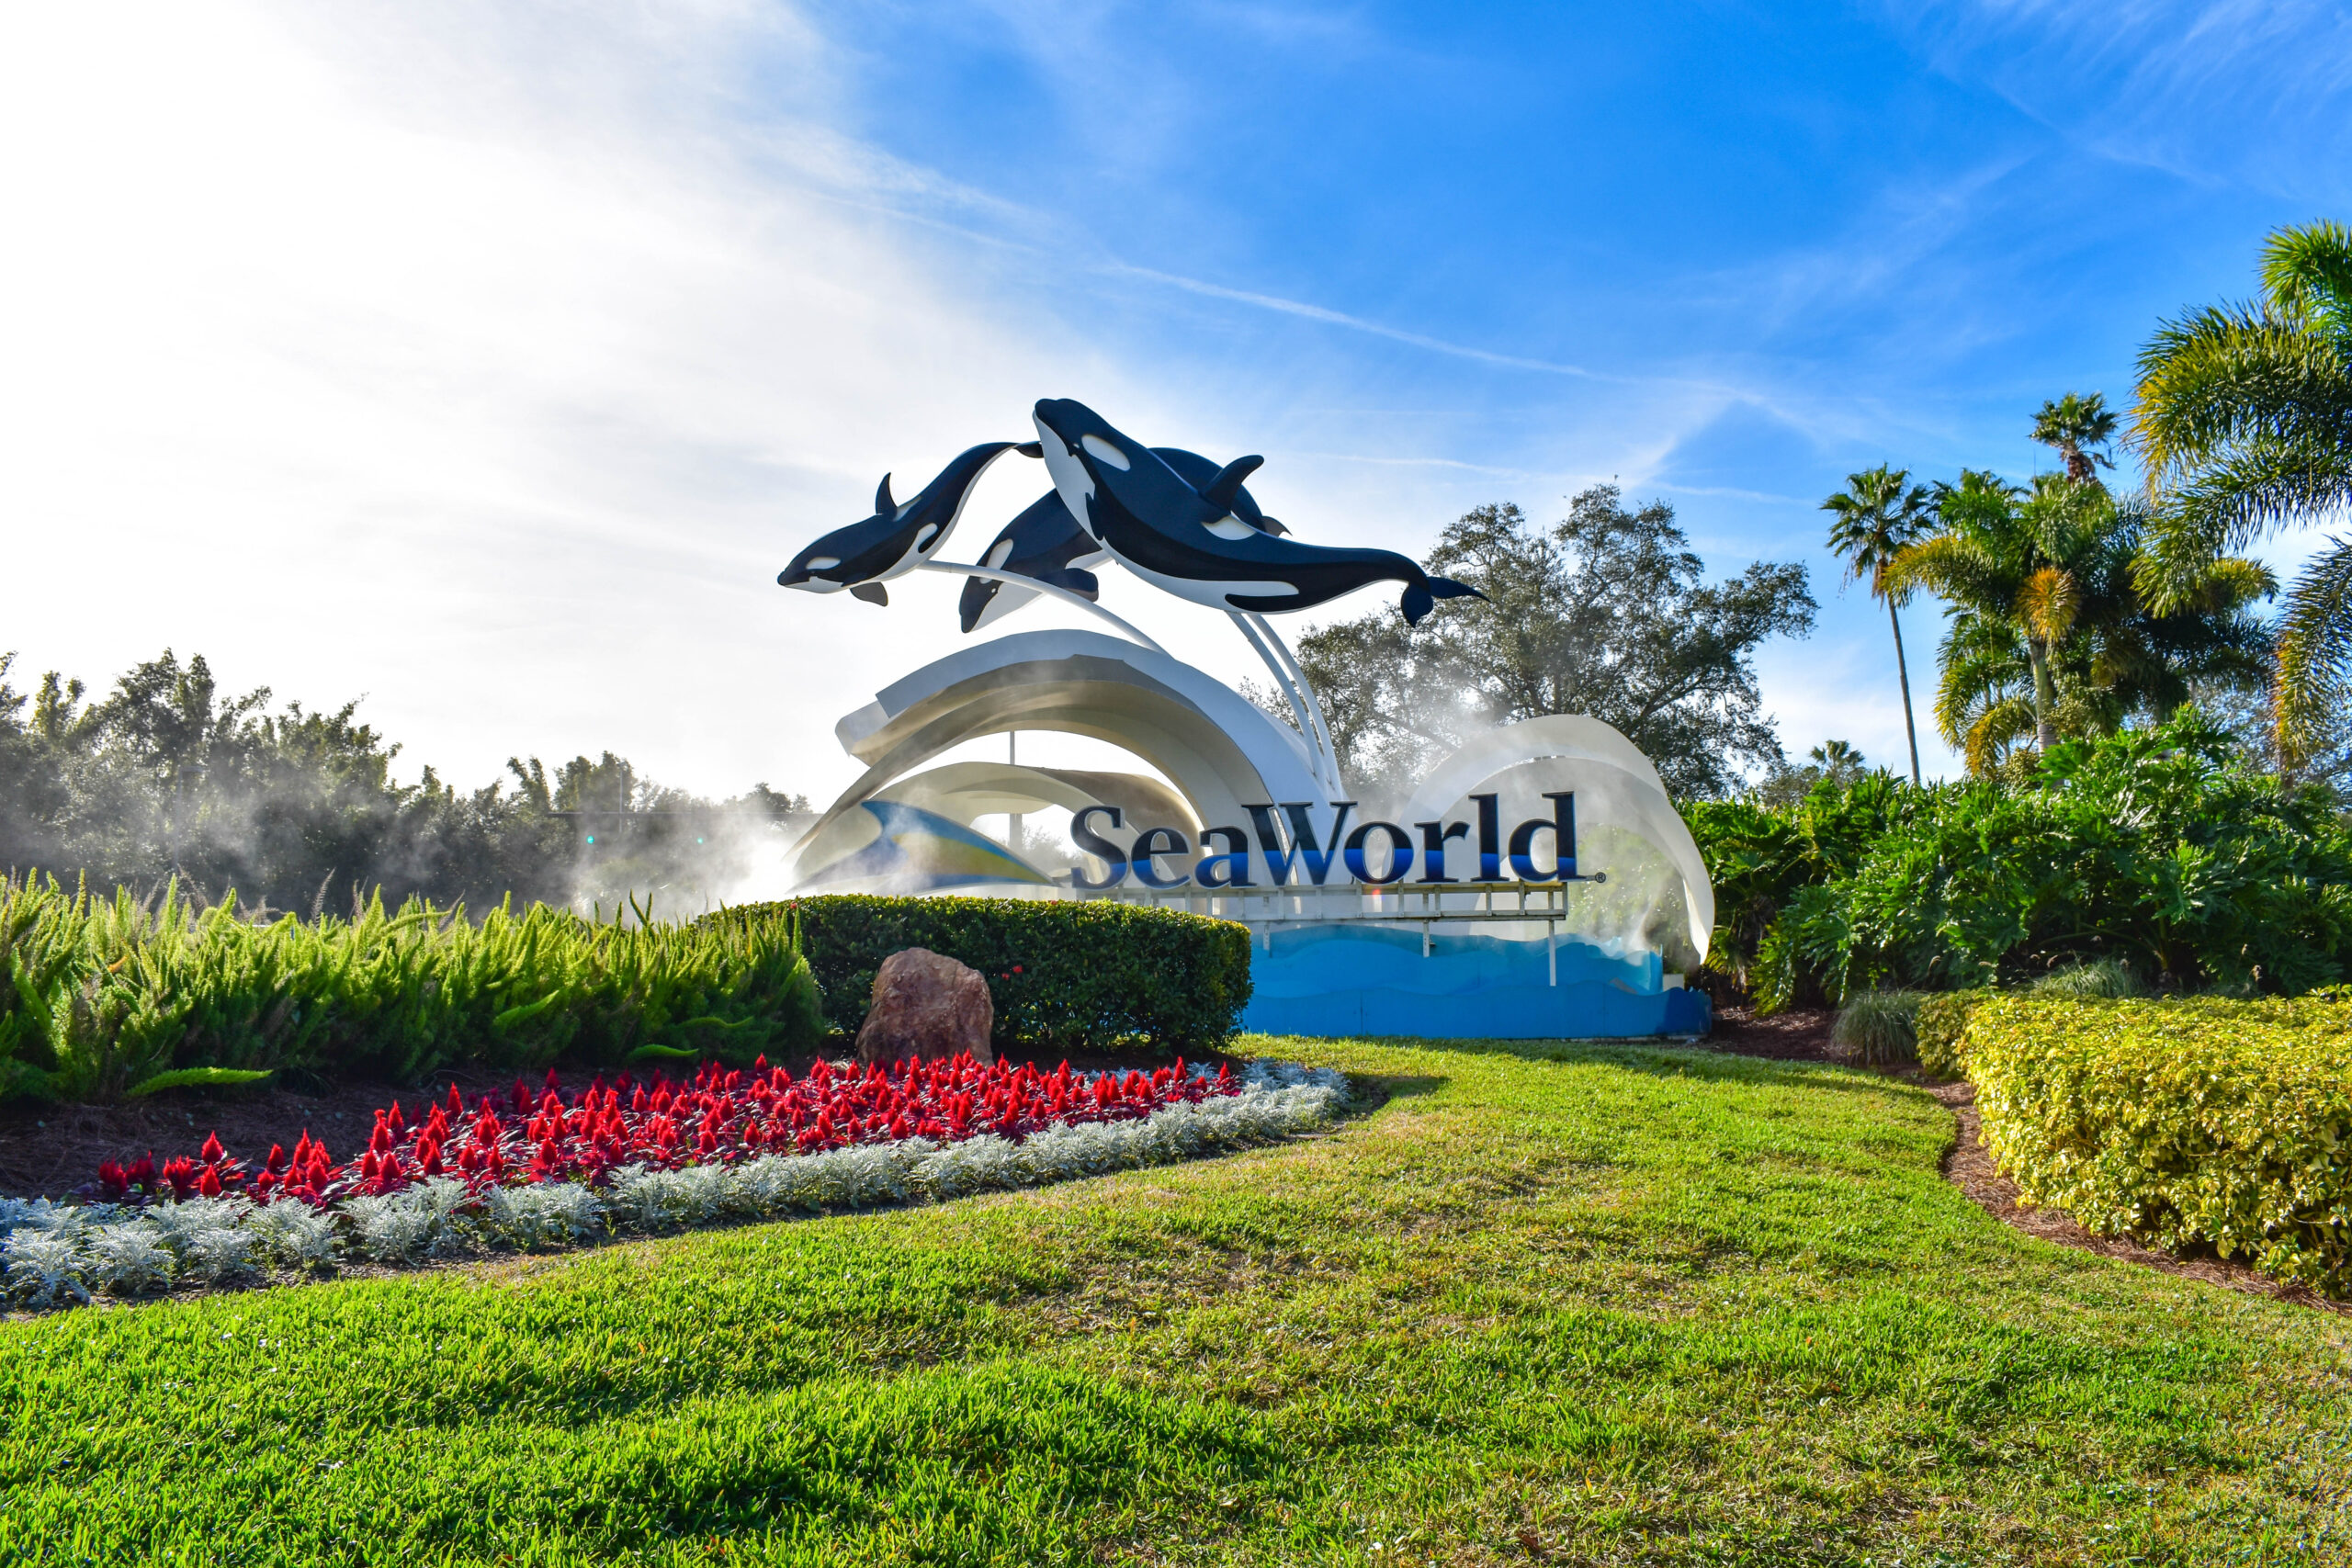 Panoramic view of SeaWorld sign in International Drive area.